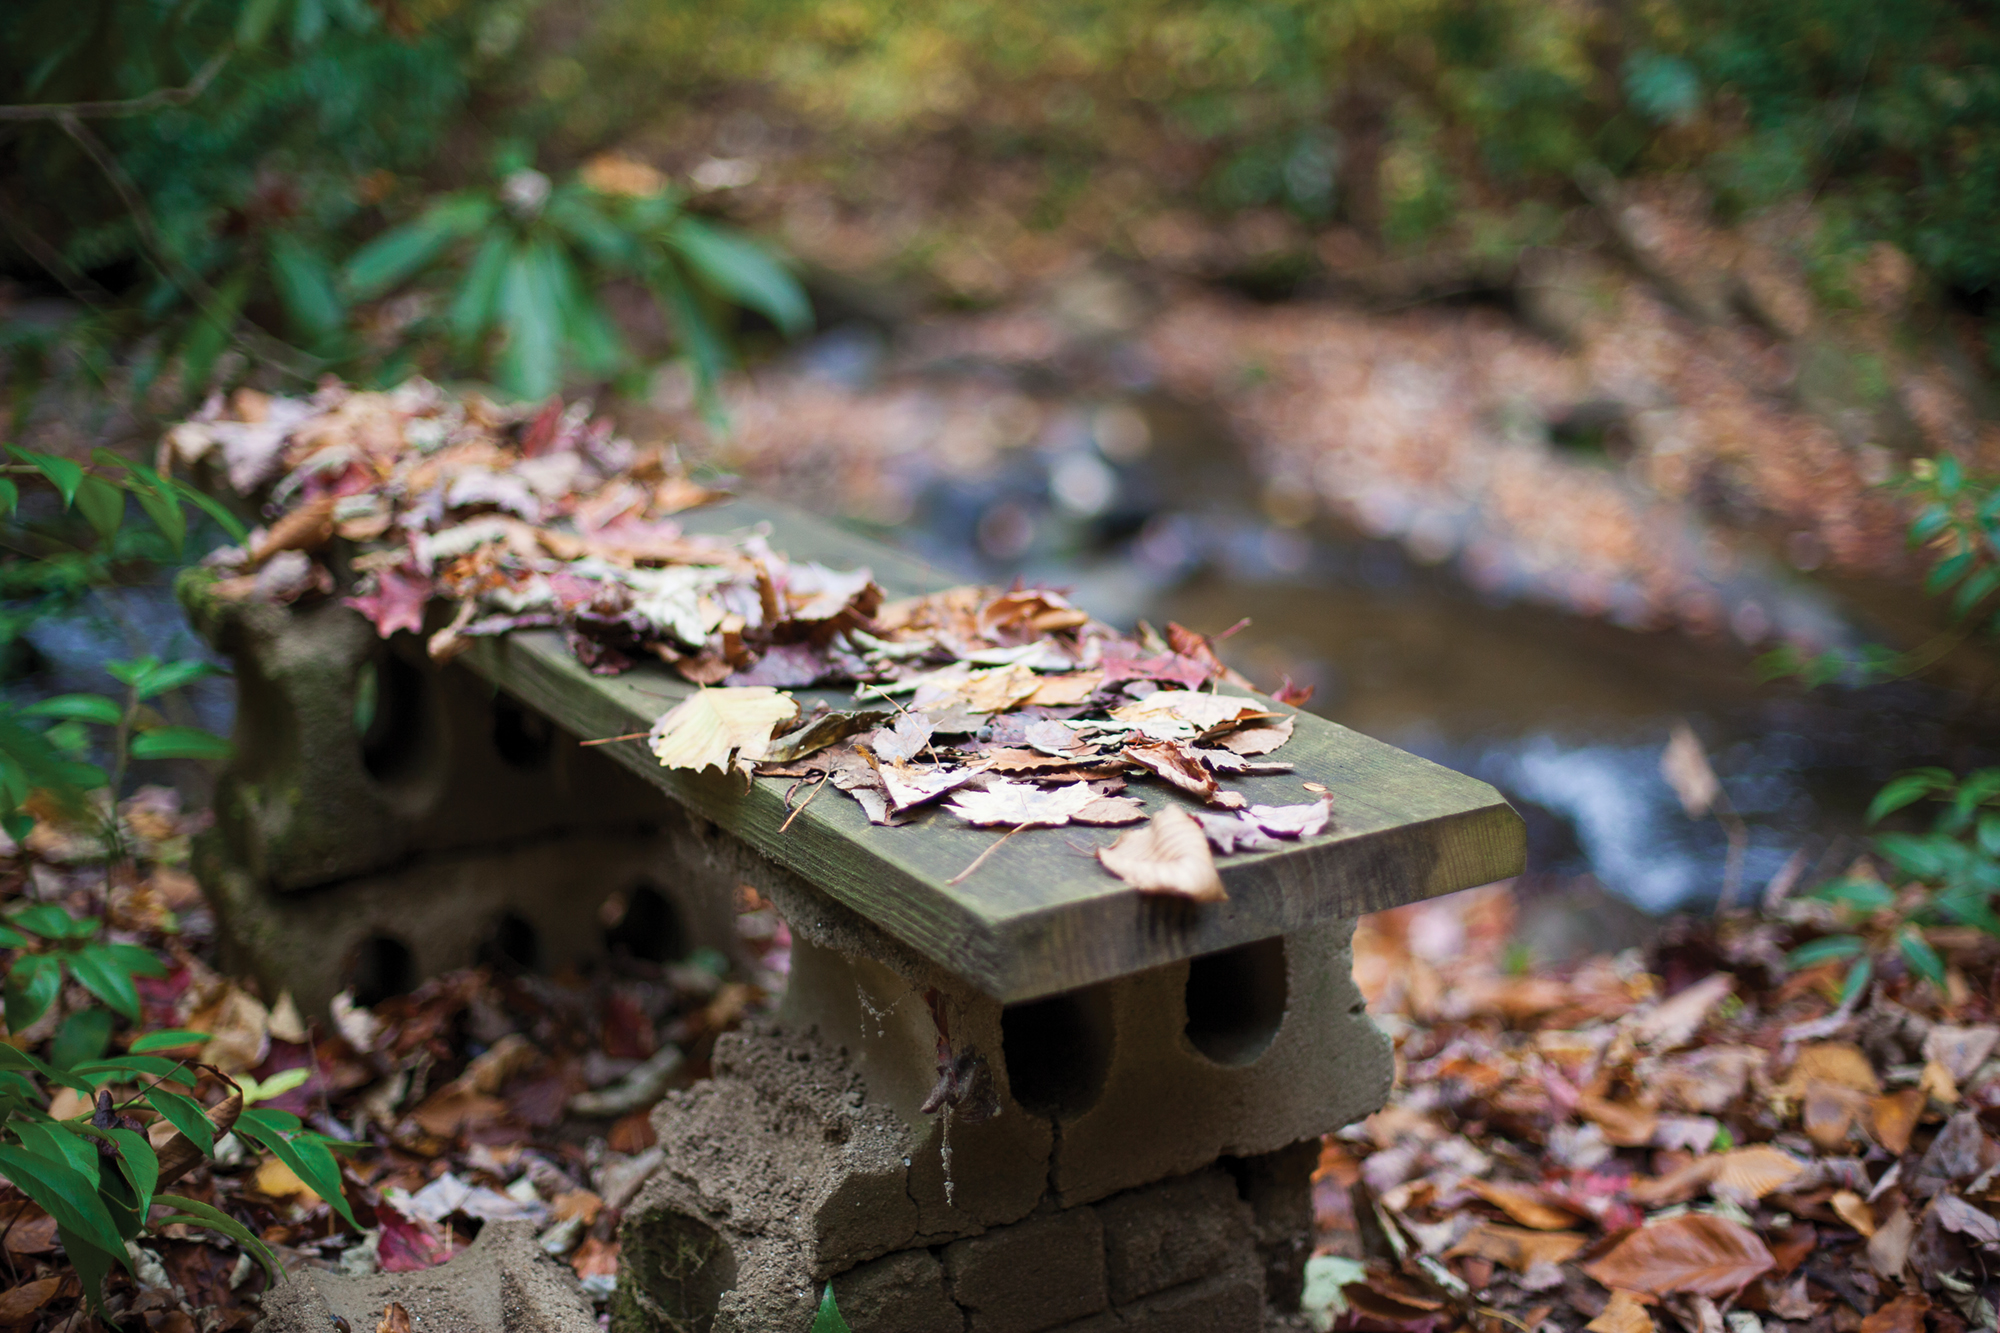 Ellison's walks often take him to the place where he composes his poems, a spot by the creek with a wood-and-cinder-block bench he set up 15 years ago.